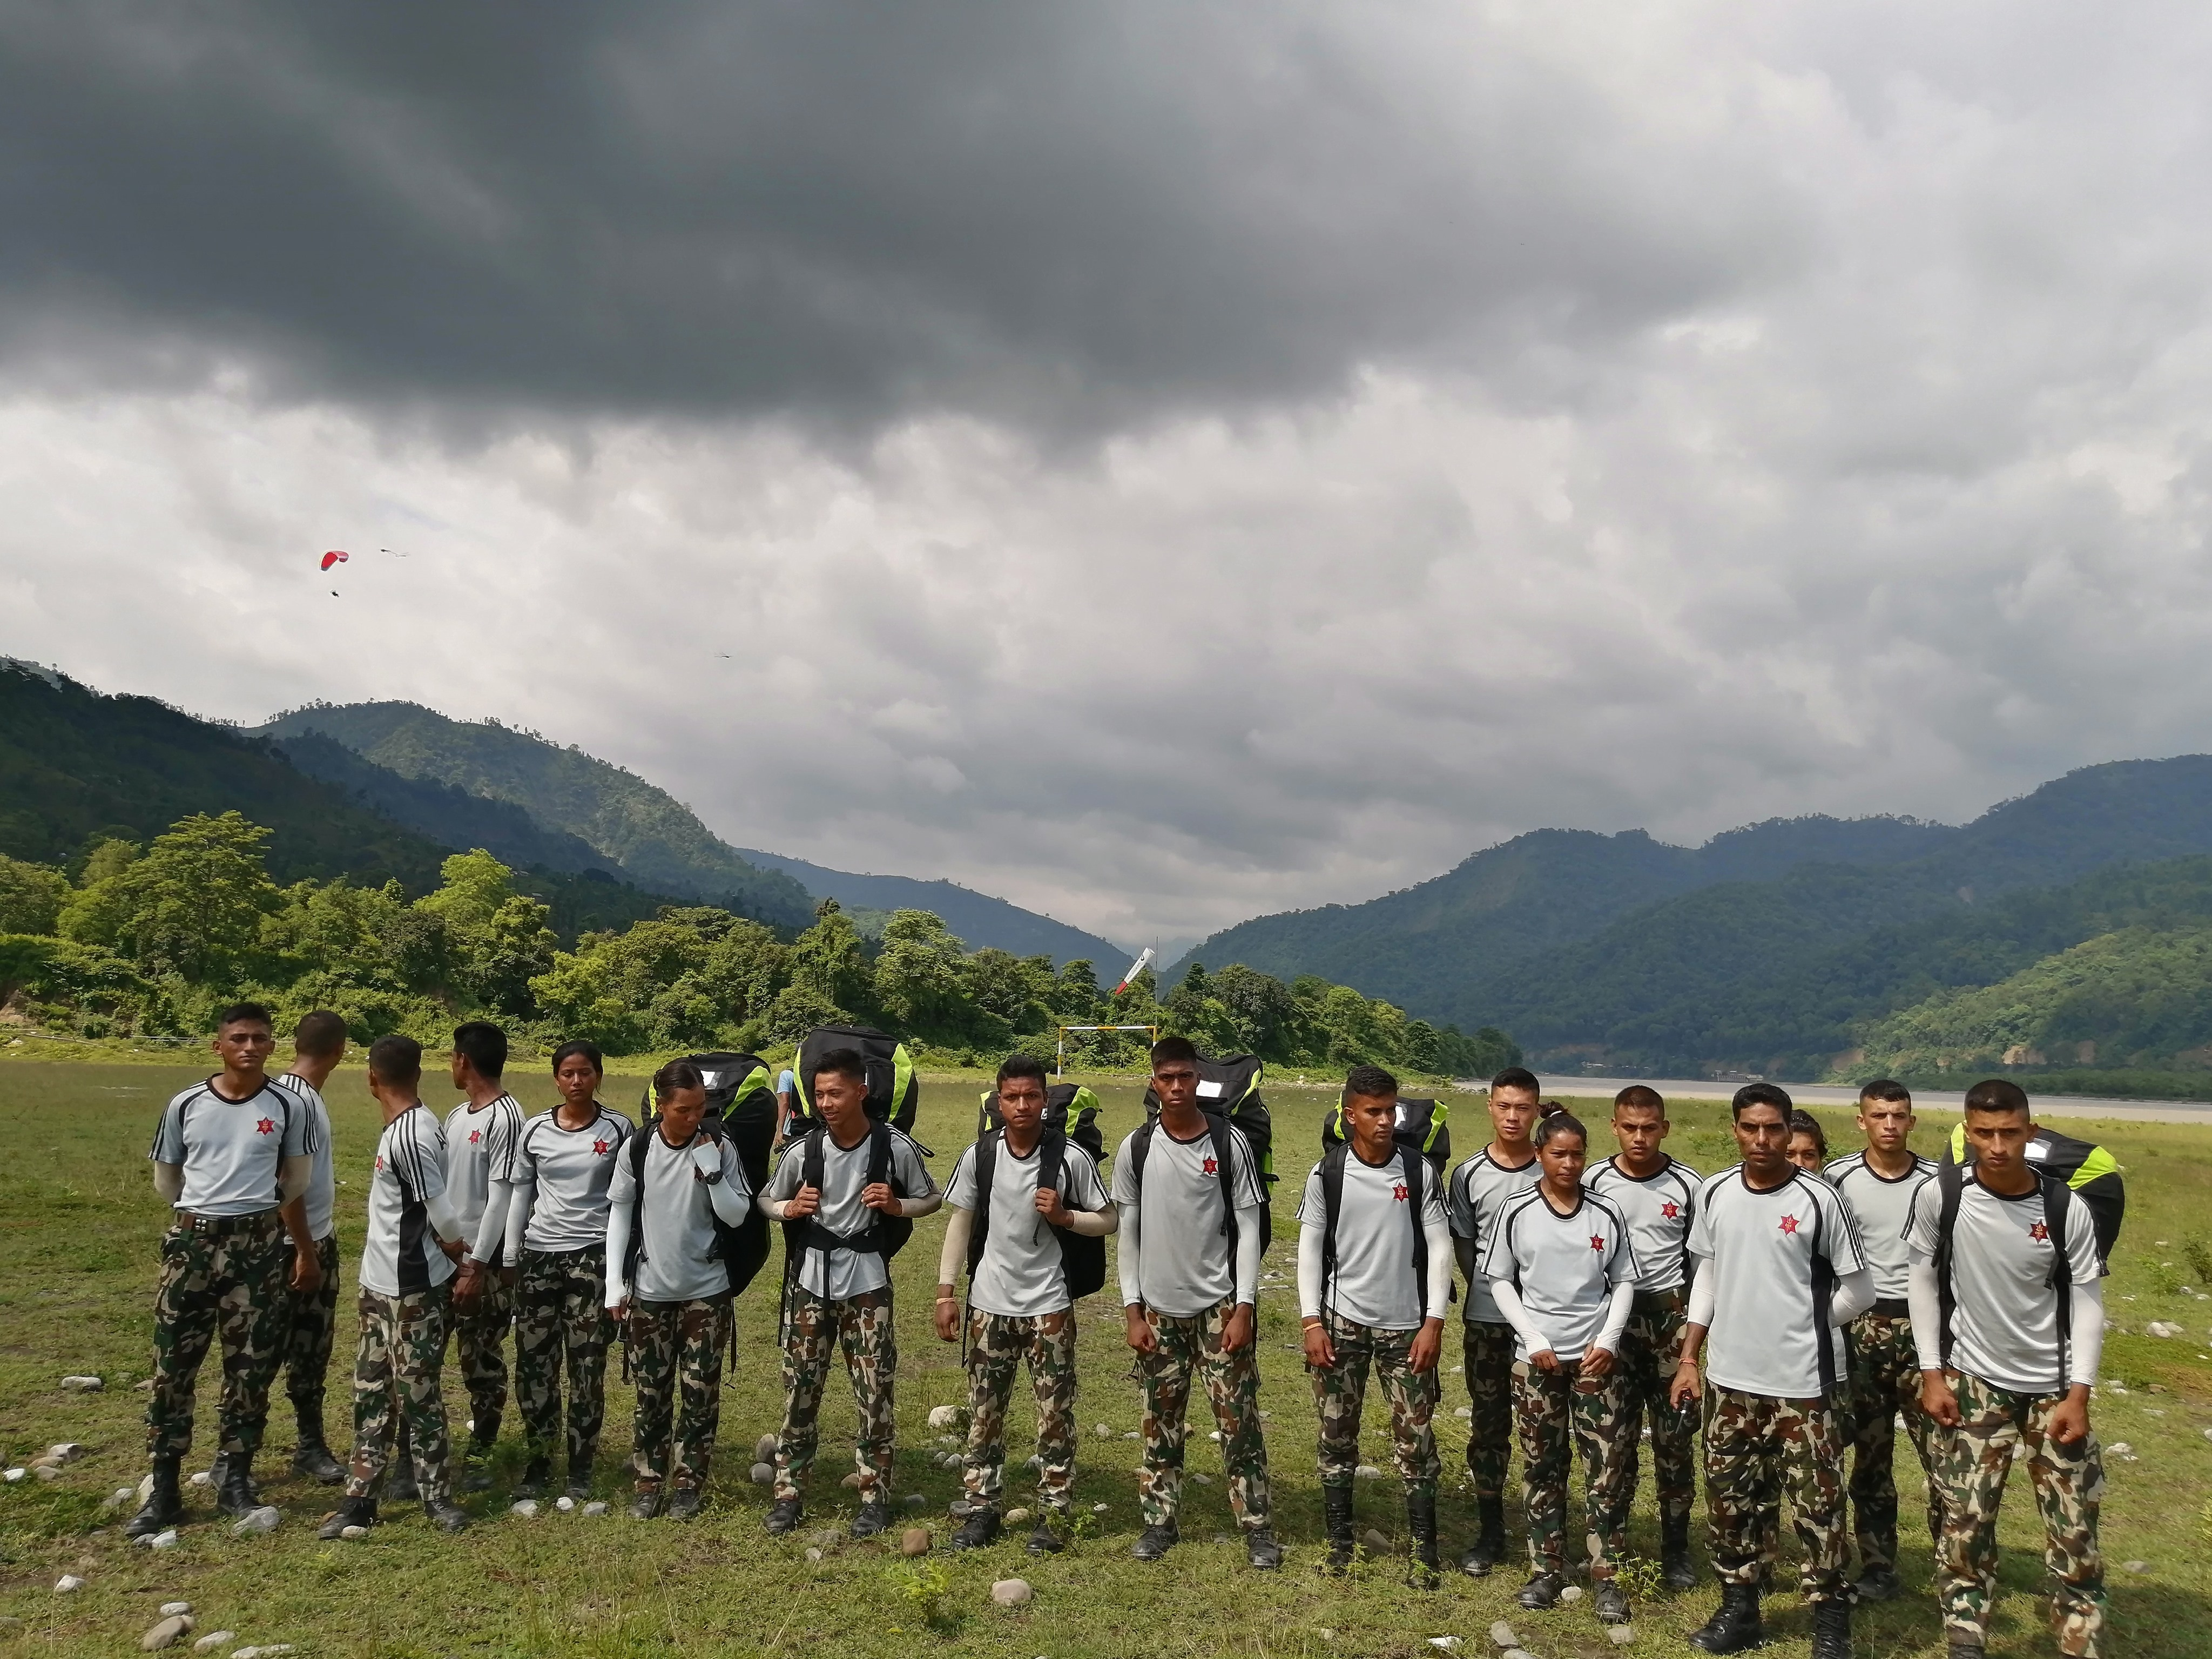 participants of nepal army paragliding first batch training in udayapur pradeshportal.com birat anupam